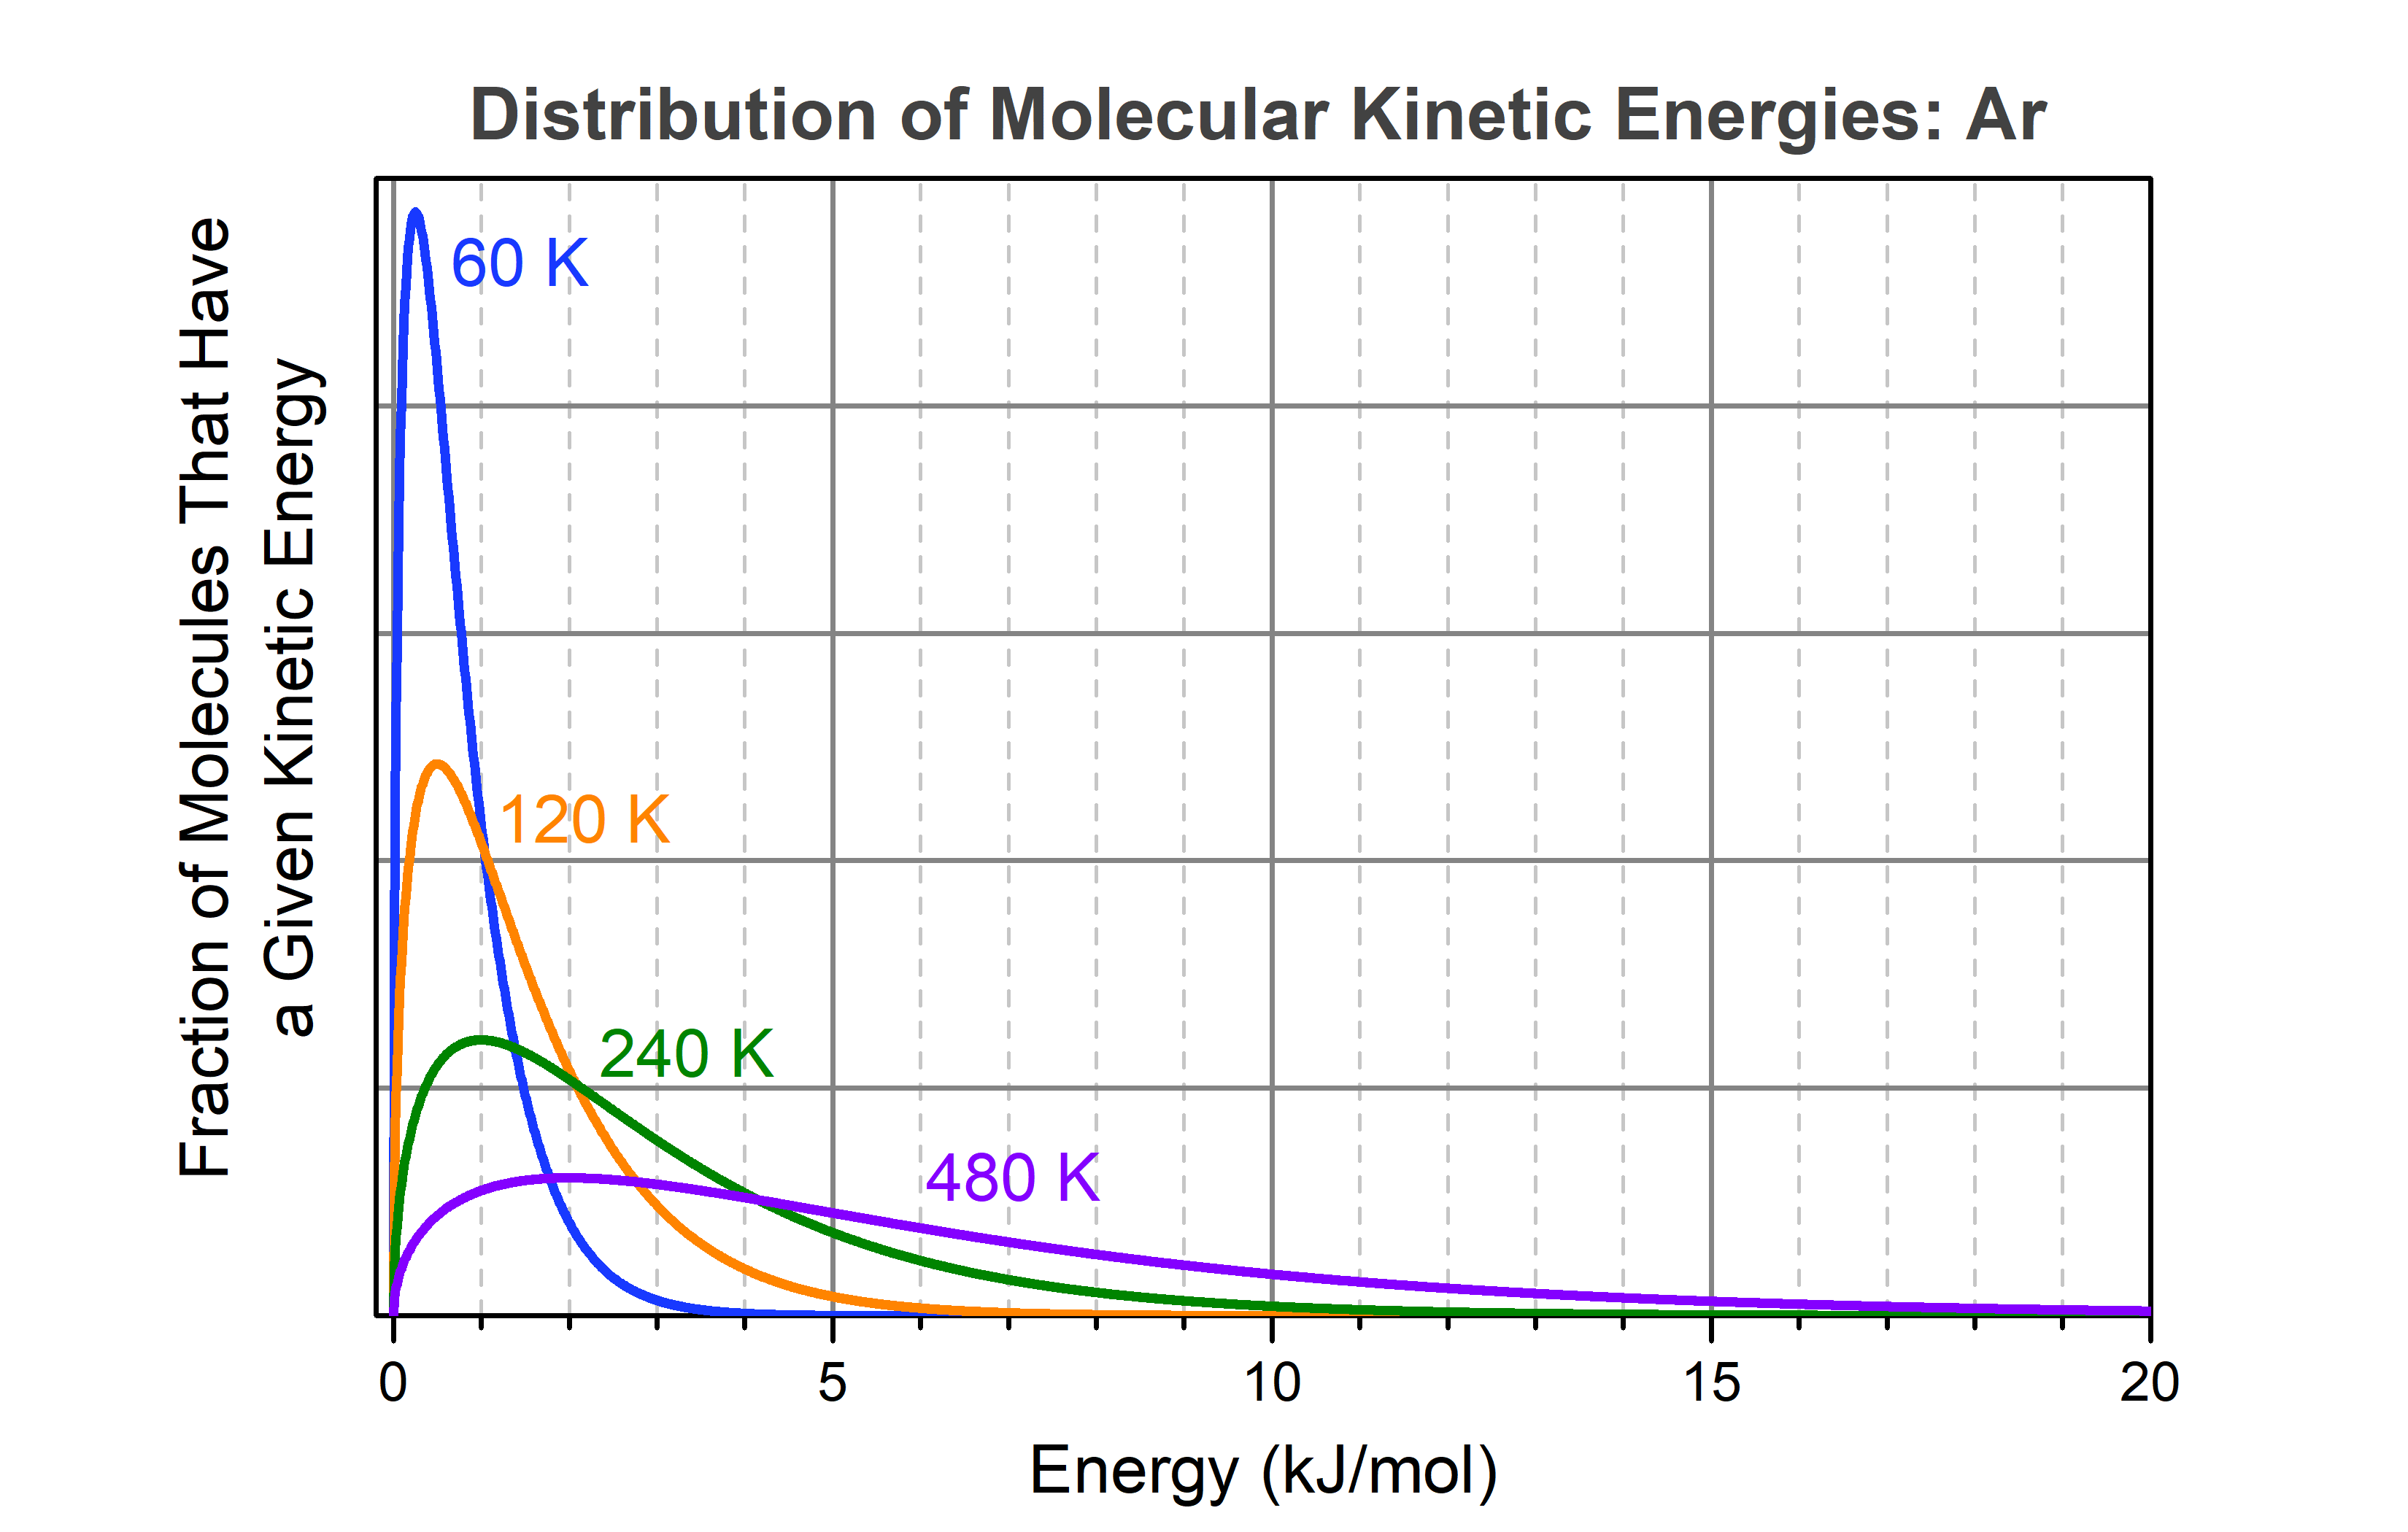 Four graphs are shown on top of each other. Vertical axis: Fration of Molecules That Have a Given Kinetic Energy. Horizontal axis: Energy (kJ/mol). A blue graph, labeled 60 K, starts at 0, rises to a maximum at 0.25 kJ/mol, and falls back to nearly 0 at about 5 kJ/mol. An orange curve, labeled 120 K, rises to a lower maximum than the blude curve; the maximum is at 0.5 kJ/mol, from which the curve drops to about zero near 8 kJ/mol. A green curve, labeled 240 K, rises to a lower maximum at about 1 kJ/mol and then falls to near zero at about 15 kJ/mol. A purple curve, labeled 480 K, rises to a lower maximum at about 2 kJ/mol and has not falled back to near zero even at 20 kJ/mol, the value at the right end of the horizontal axis.